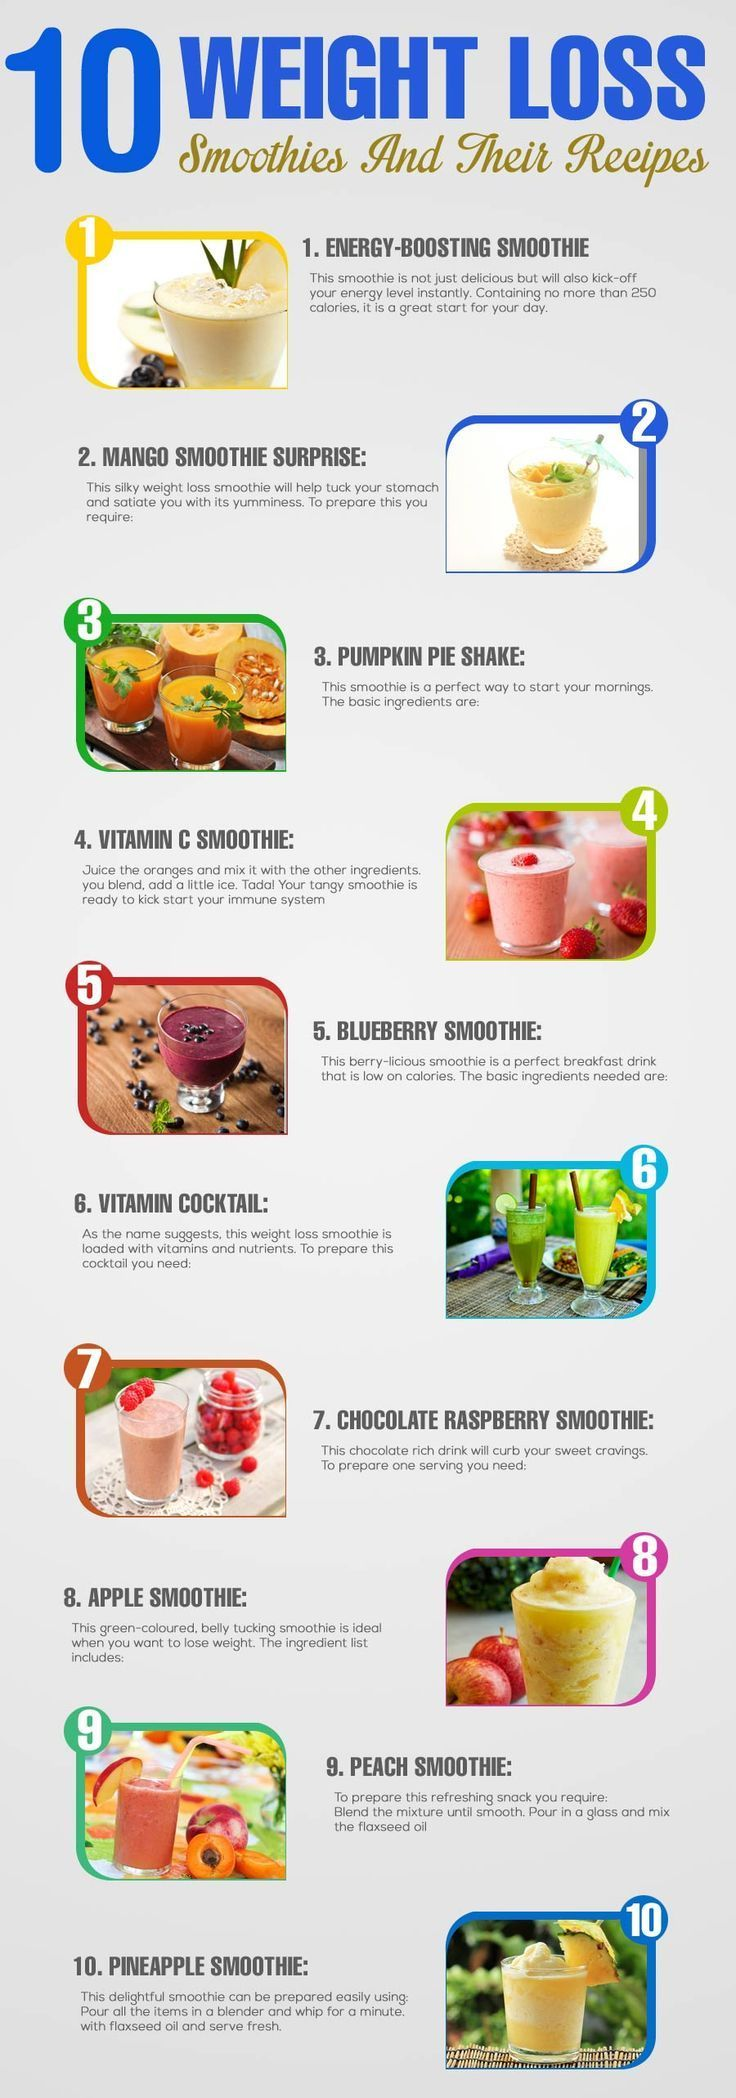 The nutritious & delicious way of losing fat is by including smoothies. Shed your excess belly fat by just sipping in these weight loss smoothies. Here are best smoothie recipes for you.#weightloss